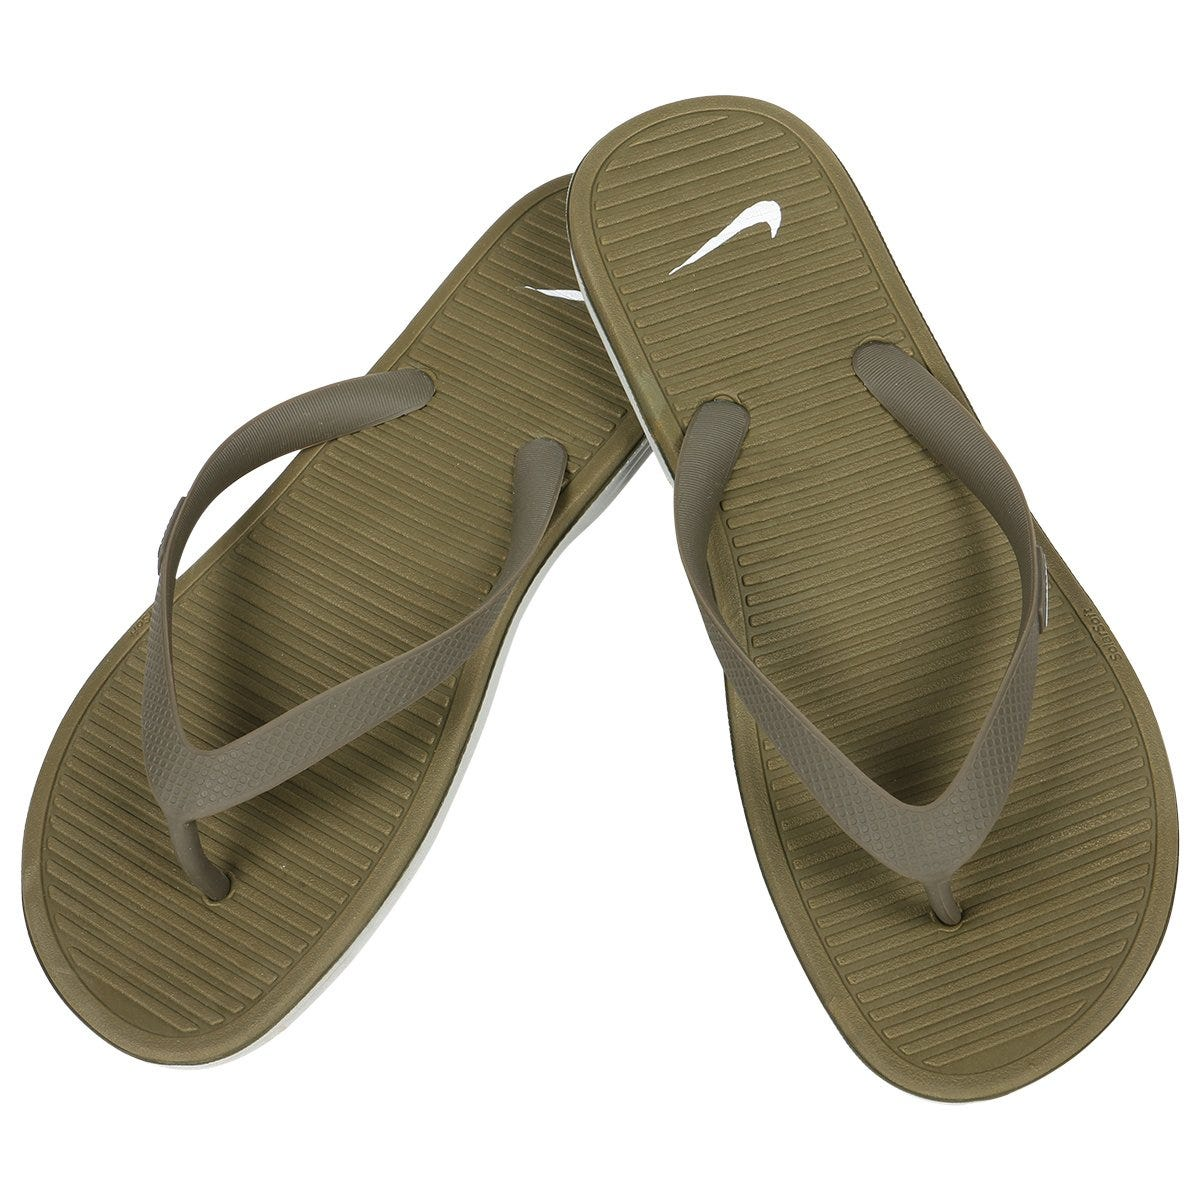 a459fdd1462 Hockey - Slide Sandals A comprehensive selection of Sports equipment ...